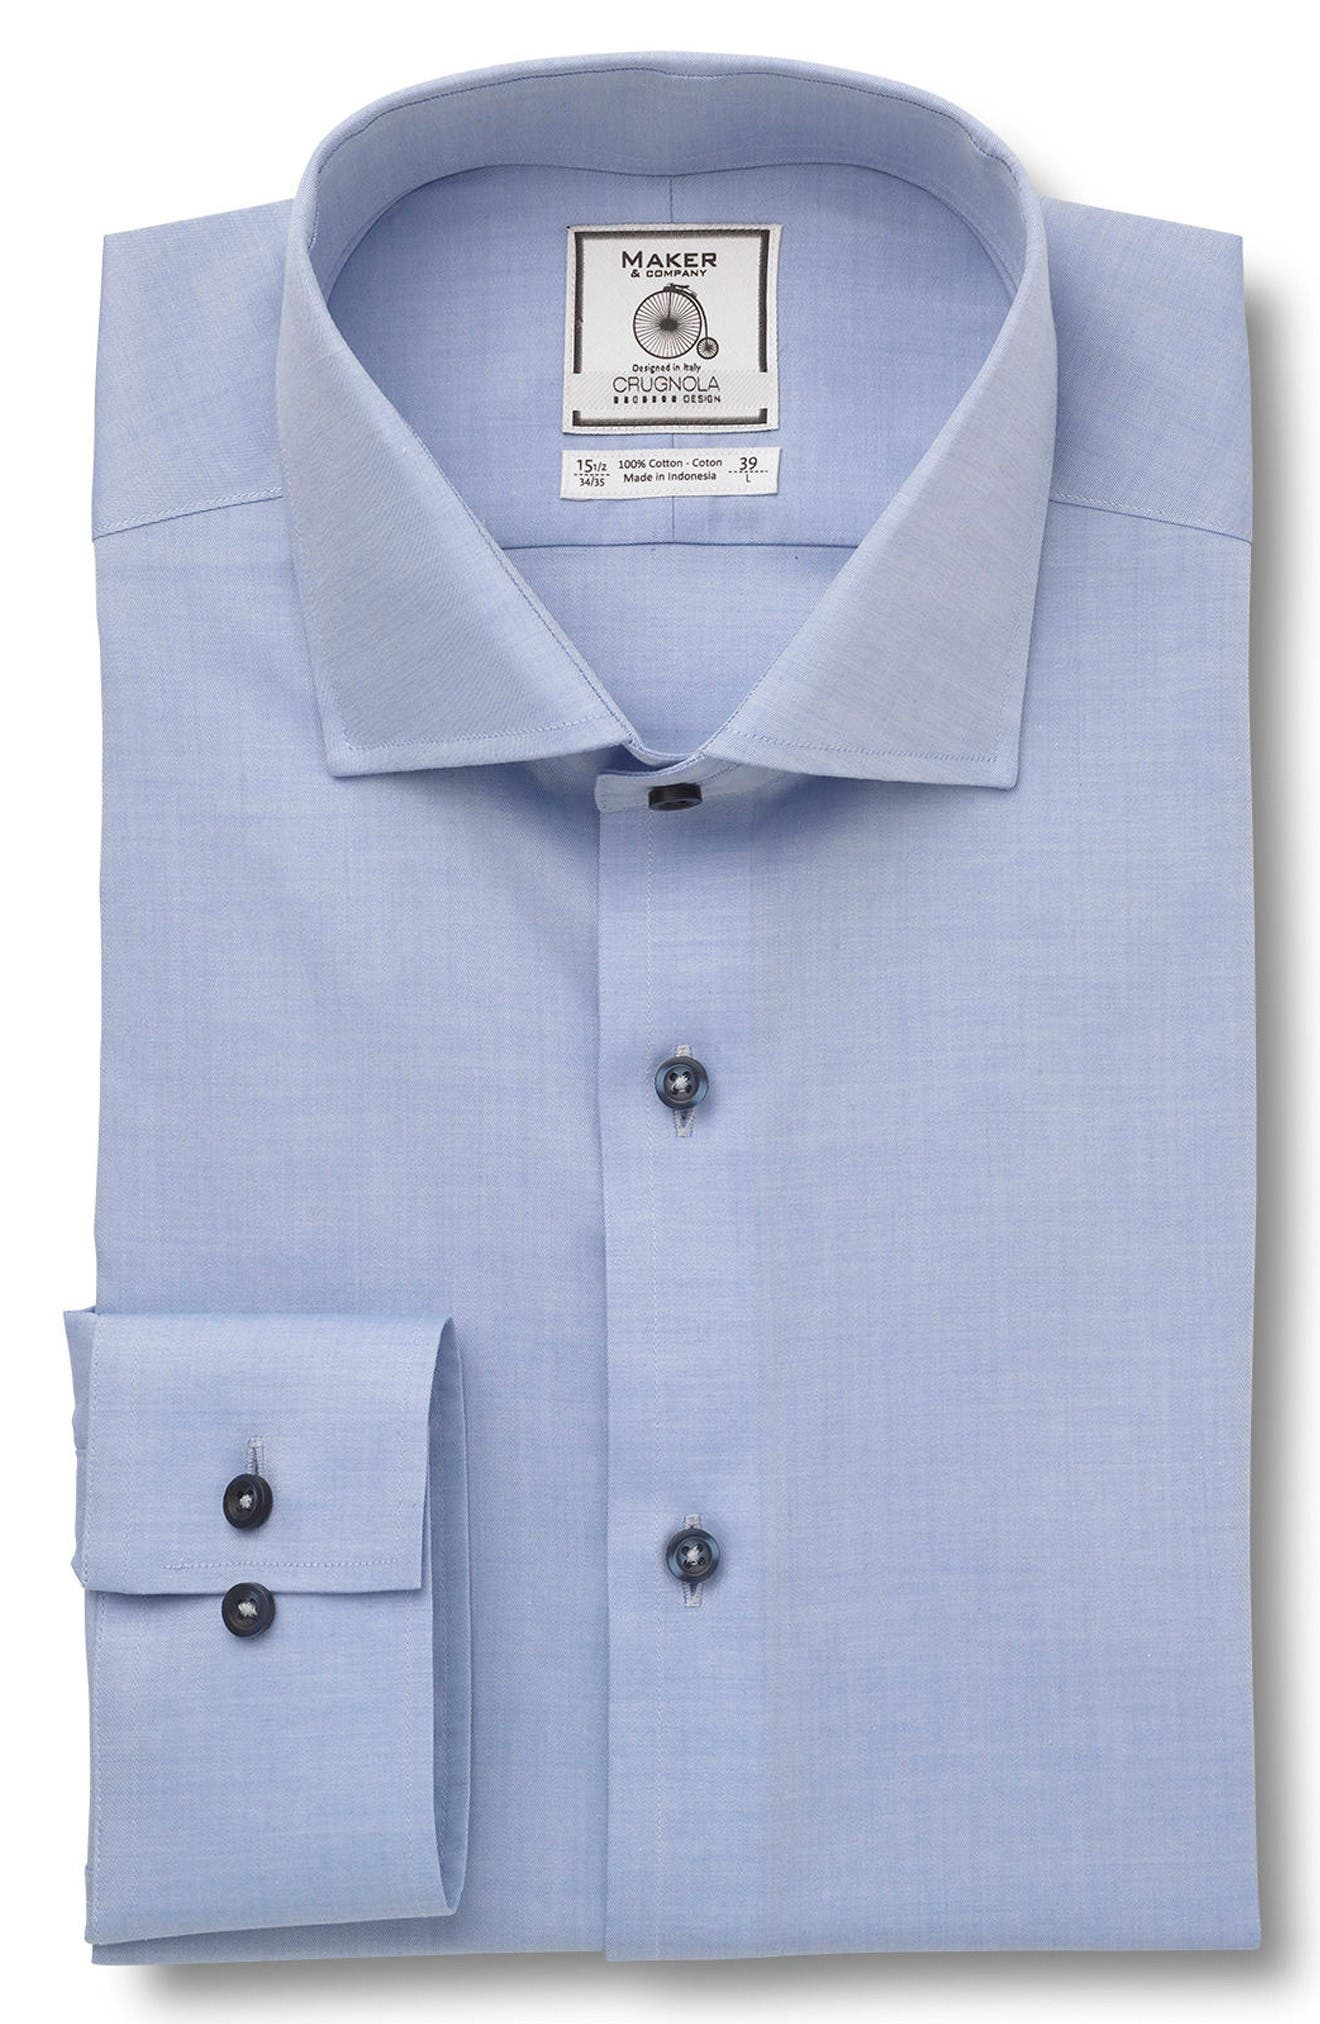 MAKER & COMPANY Trim Fit Solid Dress Shirt